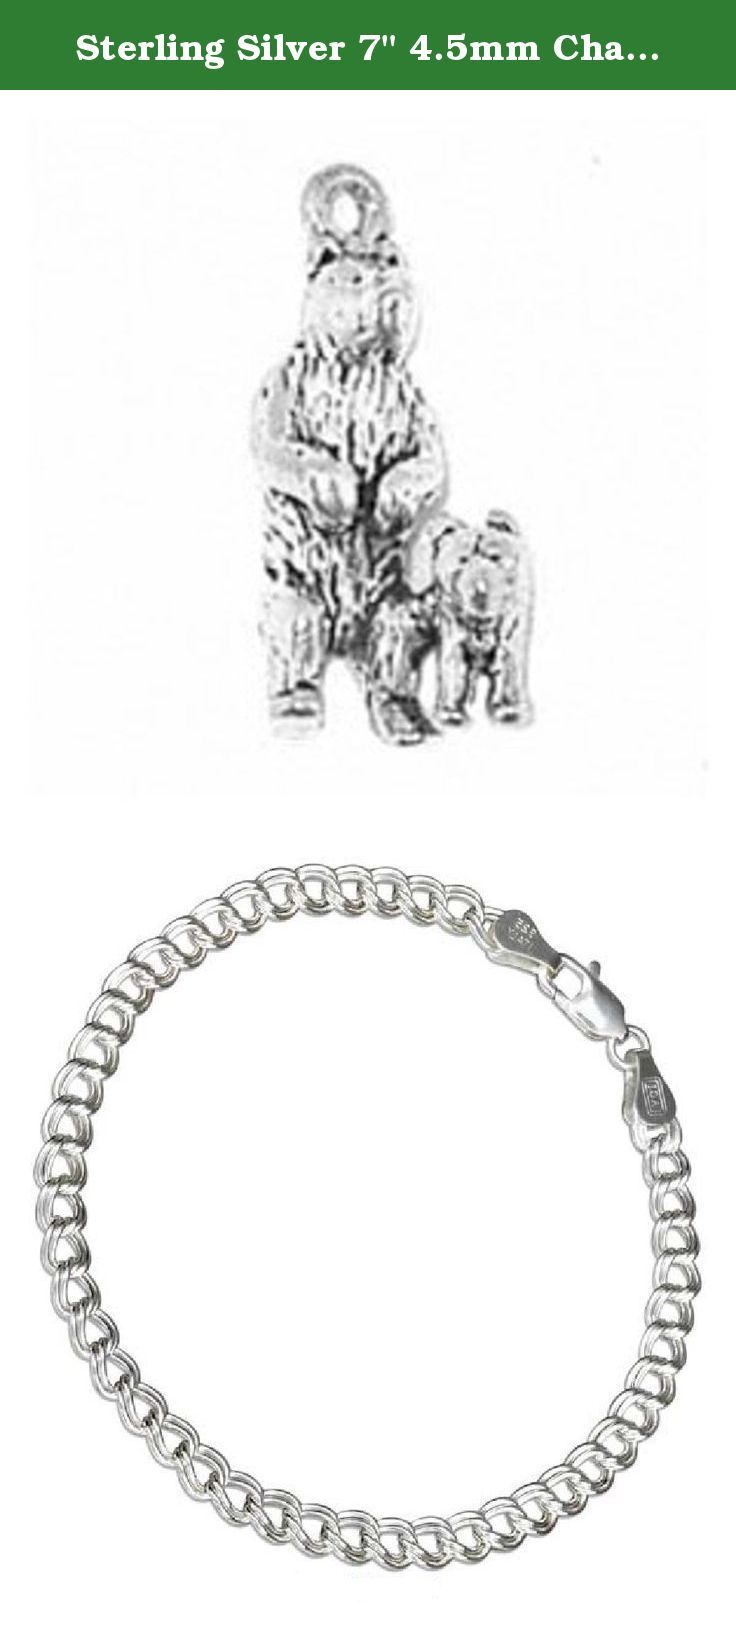 "Sterling Silver 7"" 4.5mm Charm Bracelet With Attached 3D Standing Mother Bear And Cub Animal Charm. Sterling Silver 7"" 4.5mm Italian Made Charm Bracelet With Attached 3D Standing Mother Bear And Cub Charm. These Bears Could Be Brown Or Black Bears. Material: .925 Sterling Silver Dimensions: Height: 11/16"" Front Width: 3/8"" Side Width: 7/16"" Units Sold By: Single SKU#: A35983T-BR452 Charm Made In: United States All Measurements Are Approximate ."